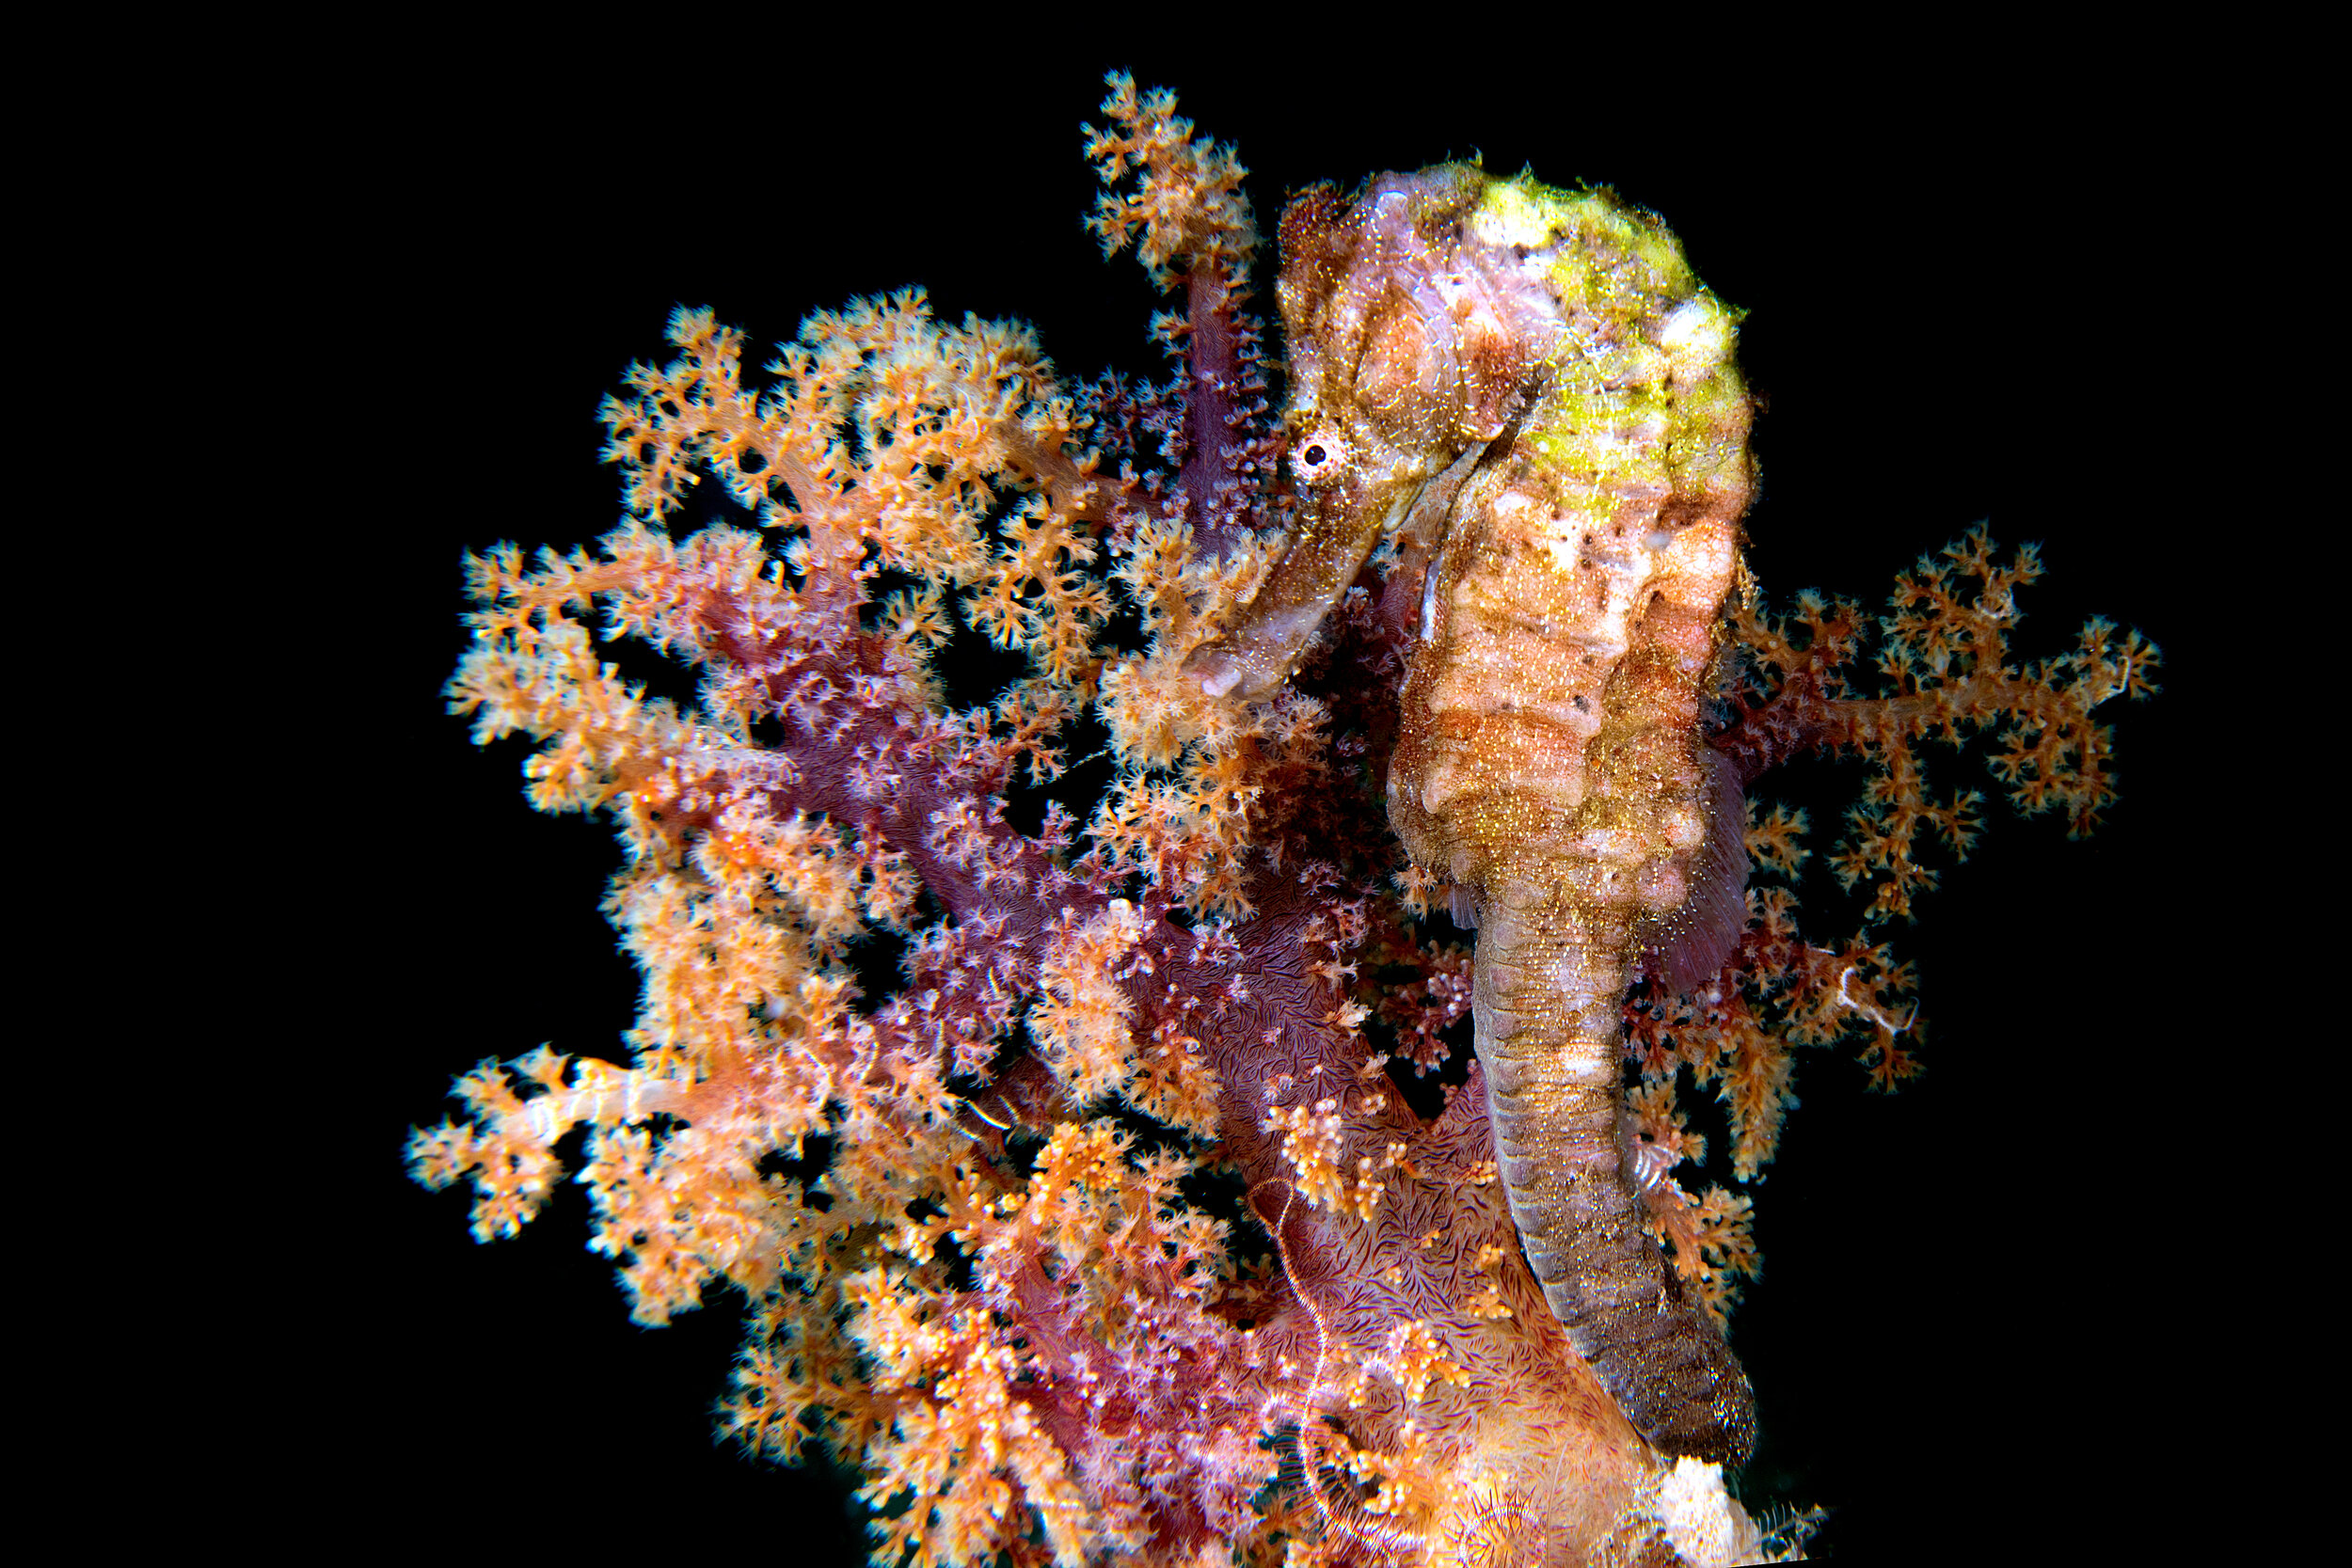 Commentary   New hope for seahorse conservation 18 years after CITES listing   You can read about our current big breakthrough in engaging 182 countries to strengthen export regulations on seahorses   Read more  >